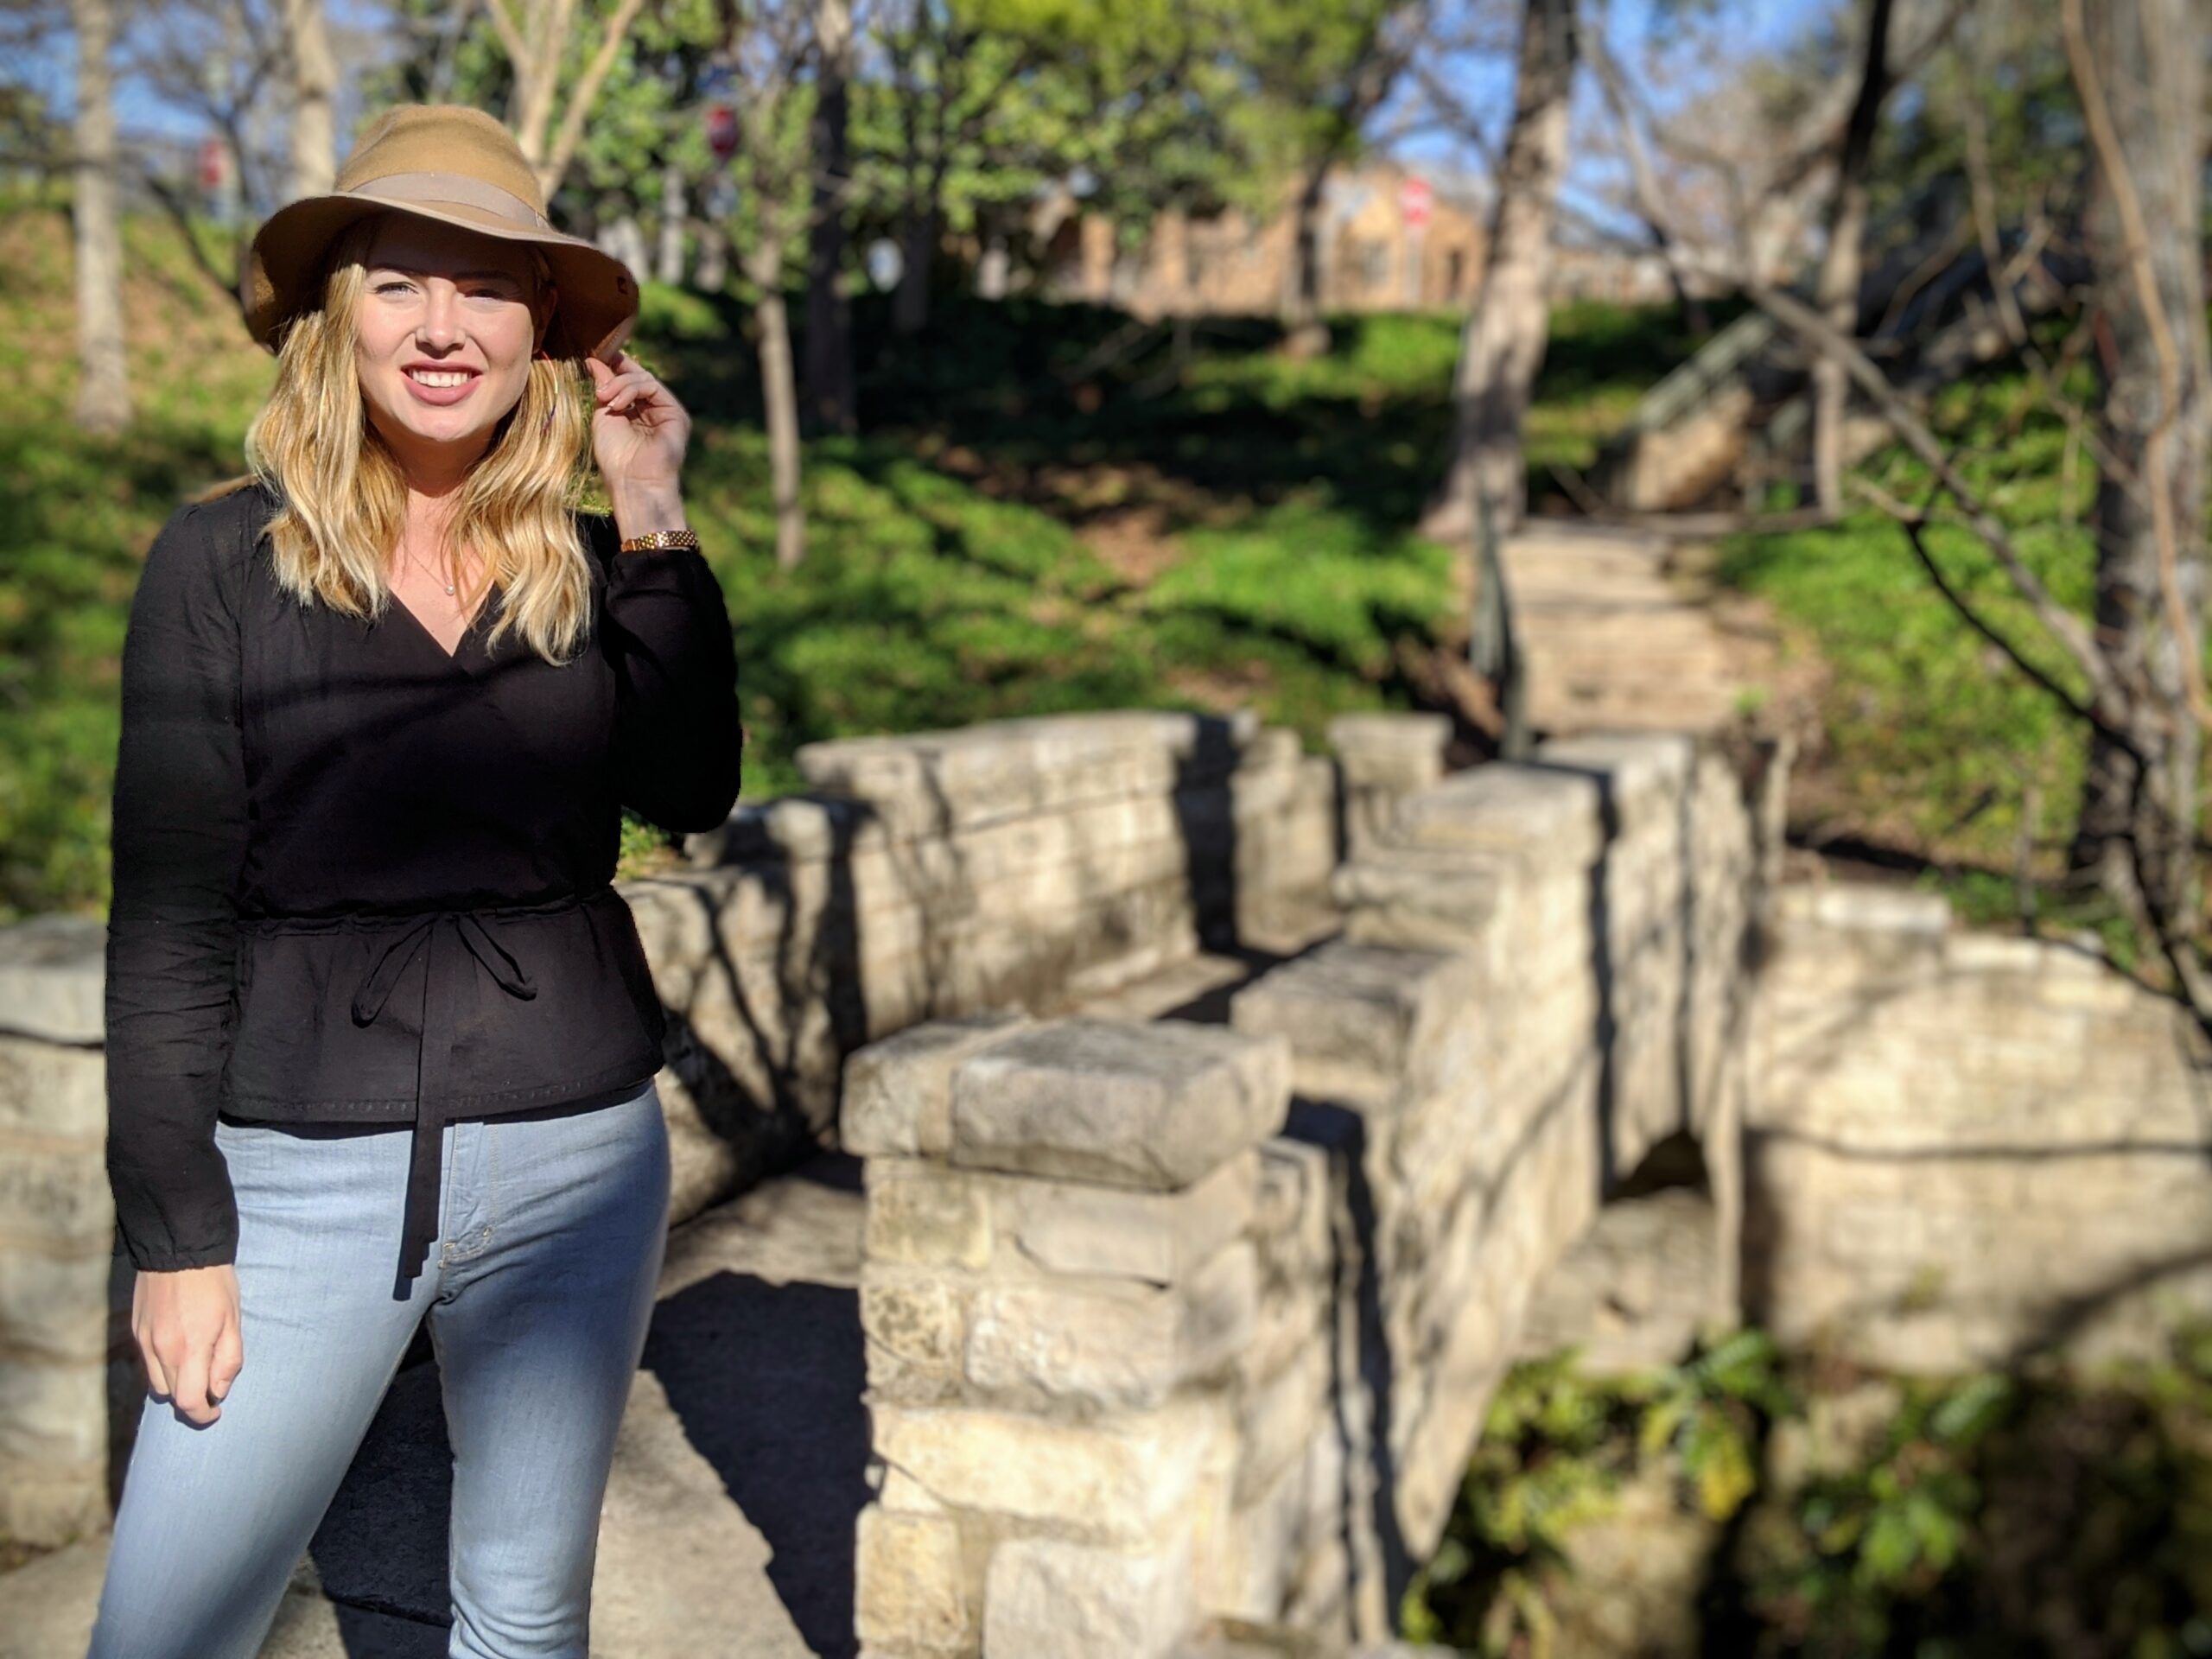 Elizabeth stands near a stone bridge in a park in the wintertime. She is wearing a tan felt hat, and a handmade black wrap top and light colored denim jeans.